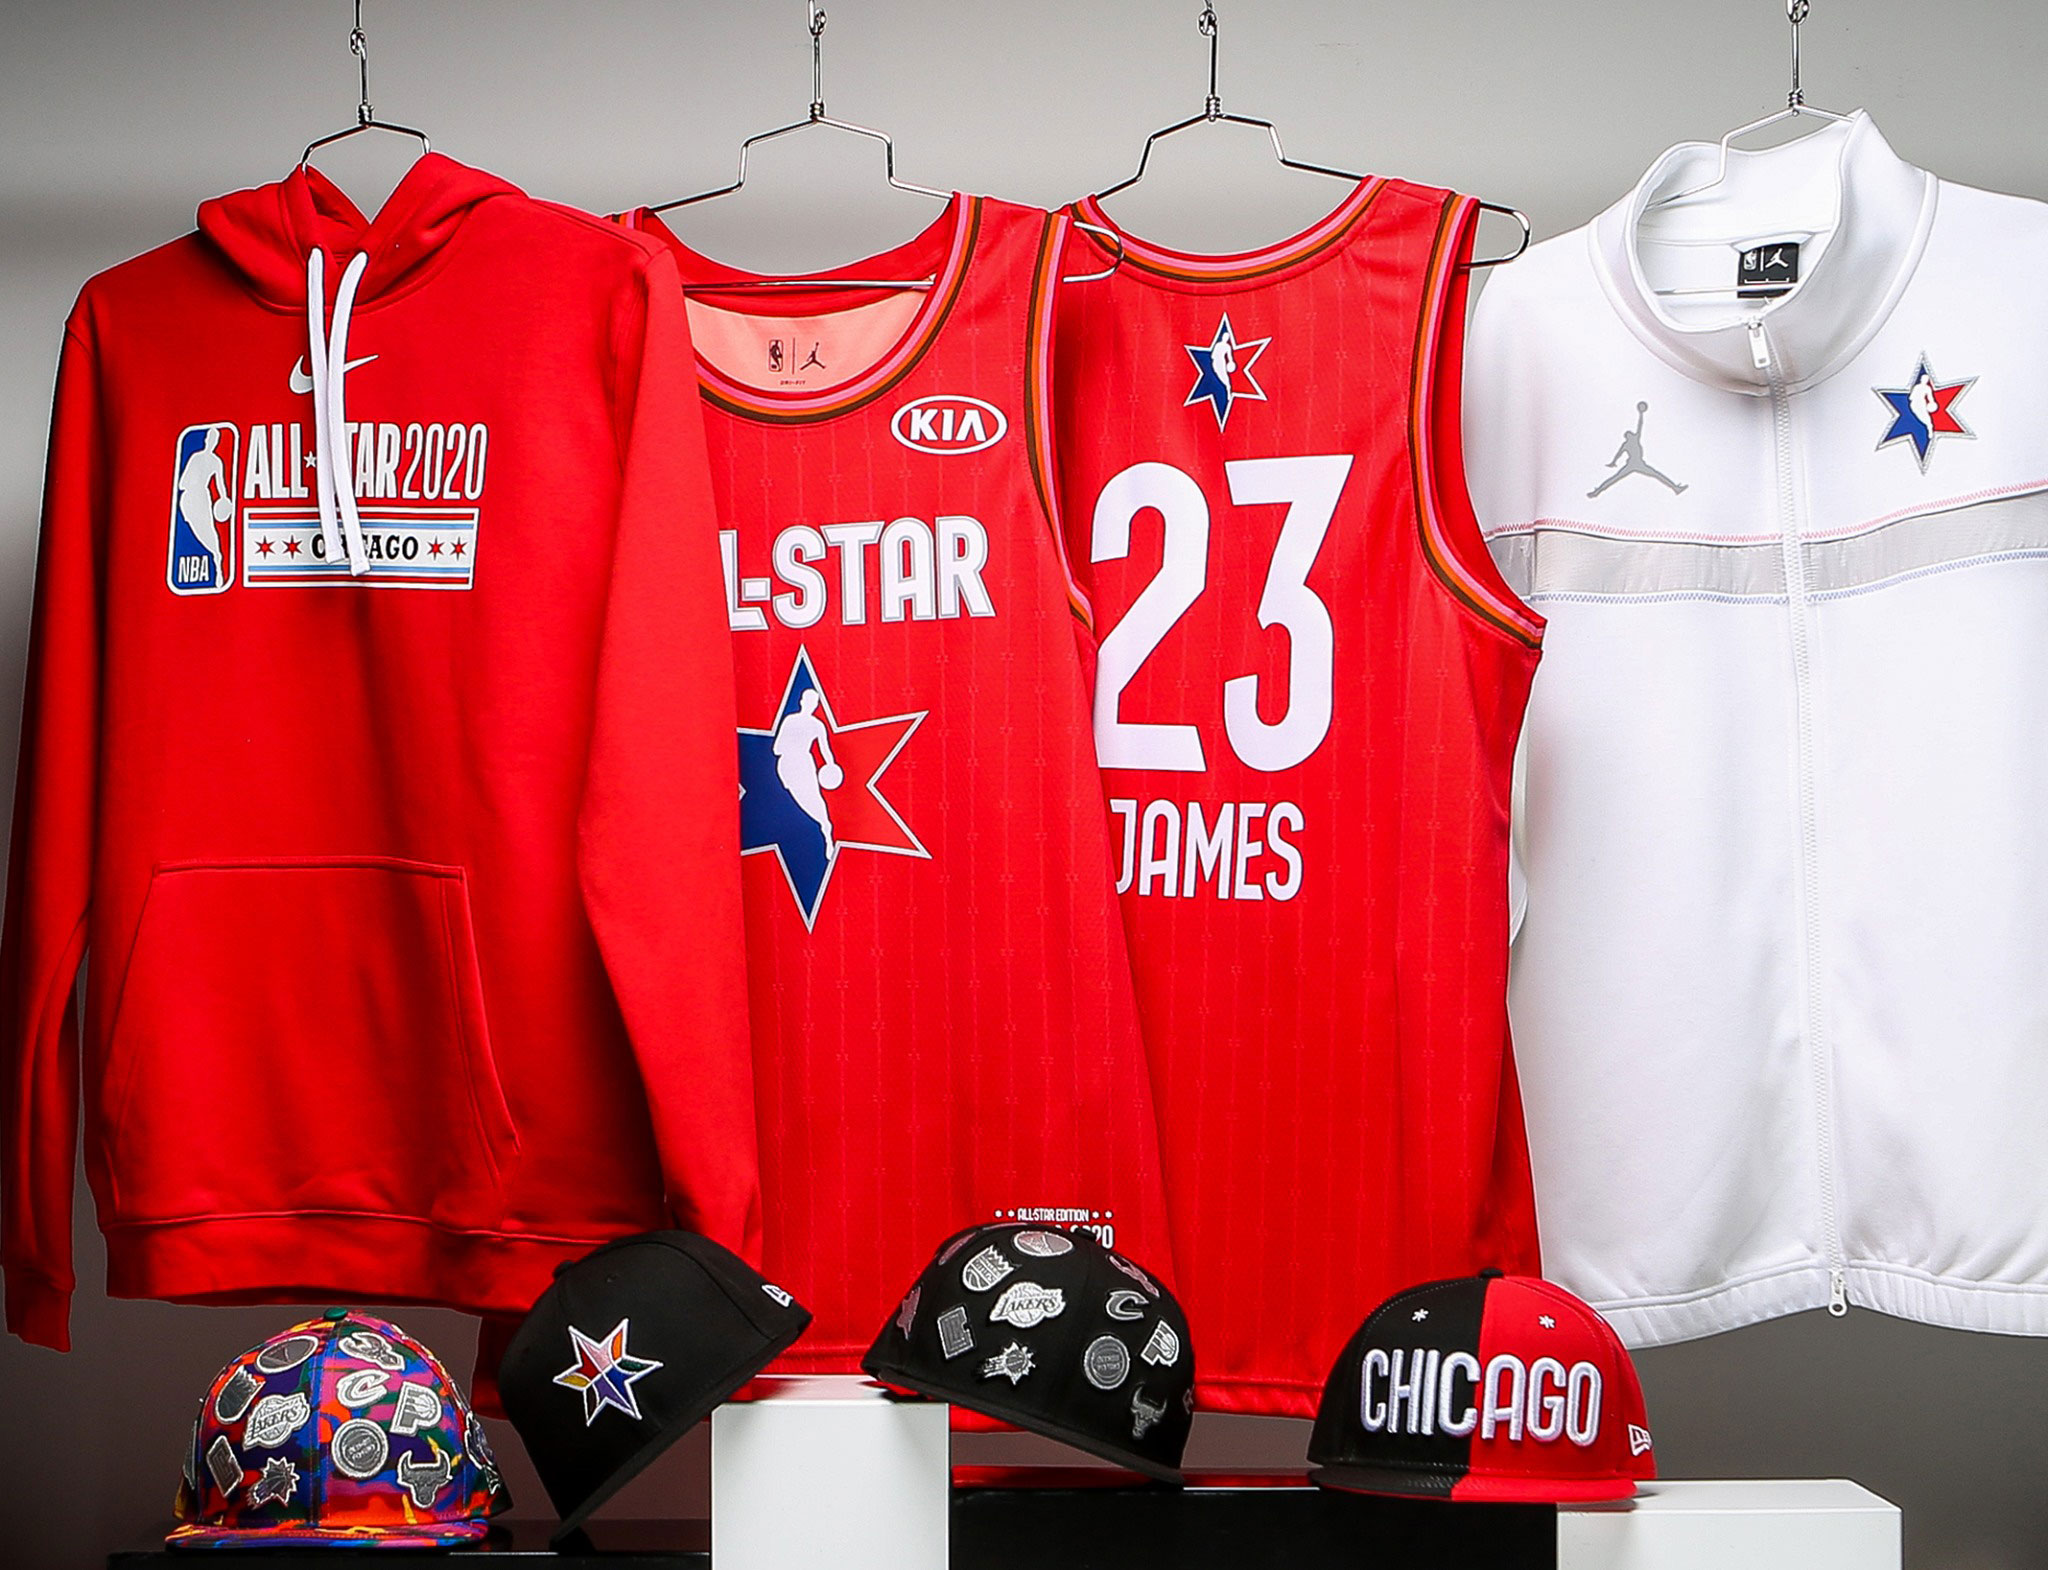 2020 NBA All Star Game Apparel and Hats